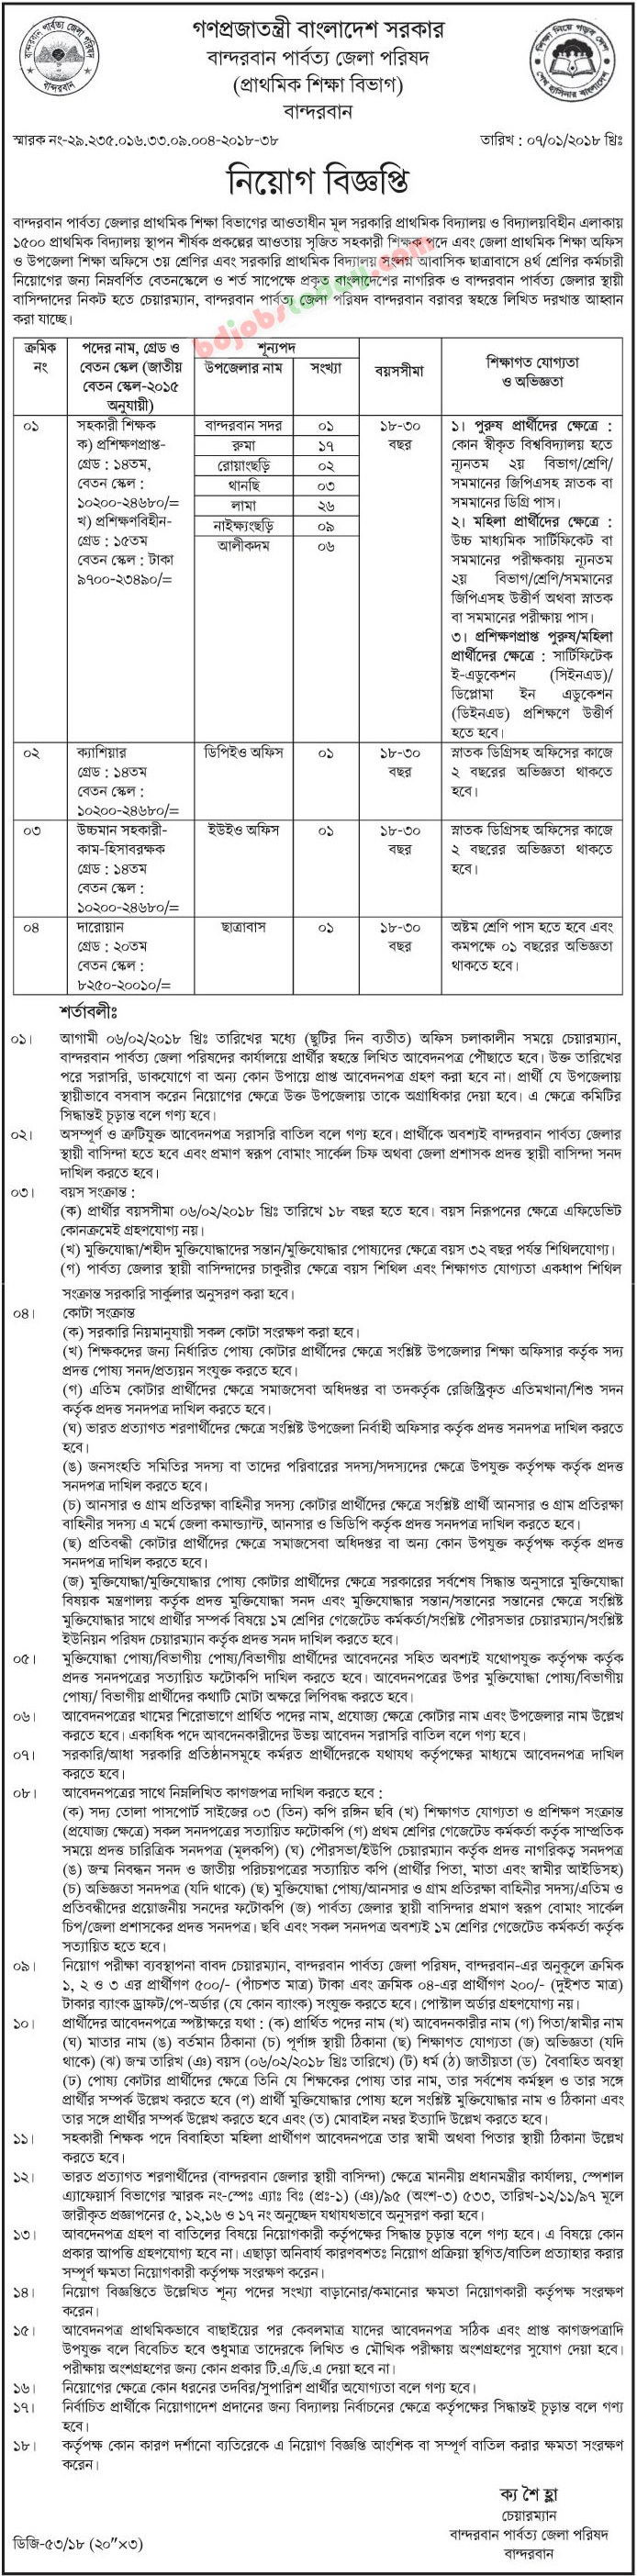 Bandarban Hill District Council jobs